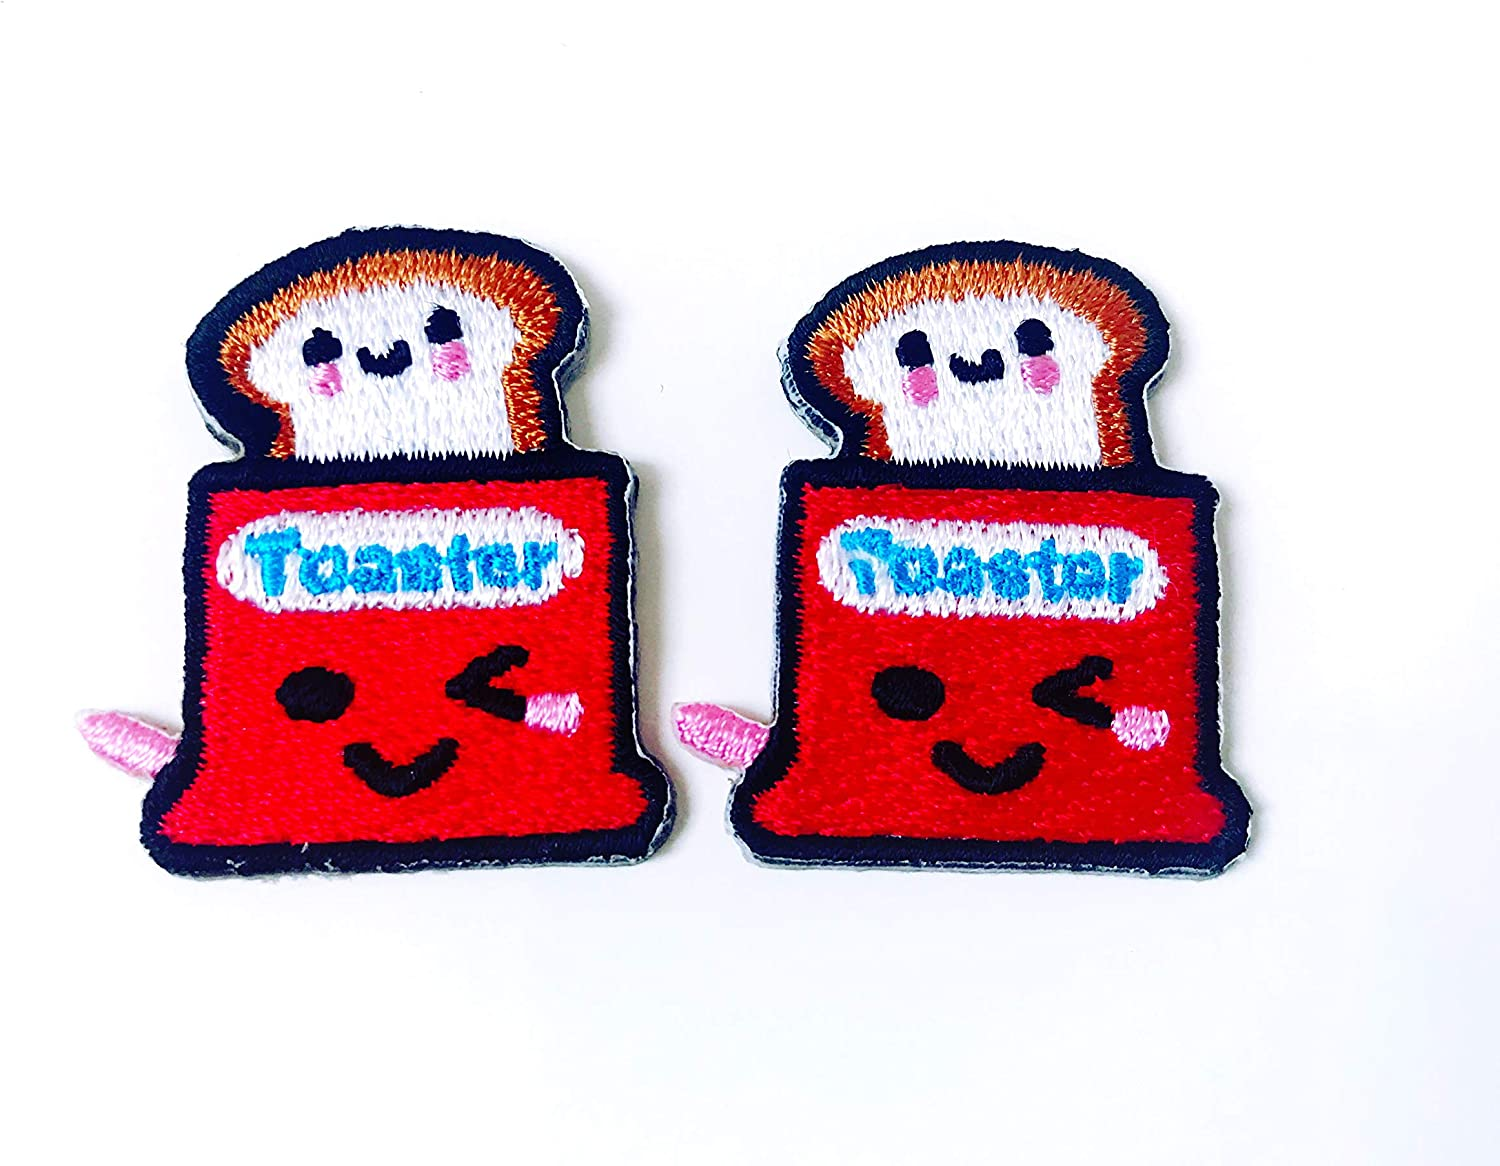 Set 2 pcs. Mini Red Toaster Bread Cute Cartoon Jacket T-Shirt Sew Iron on Embroidered Applique Badge Sign Patch